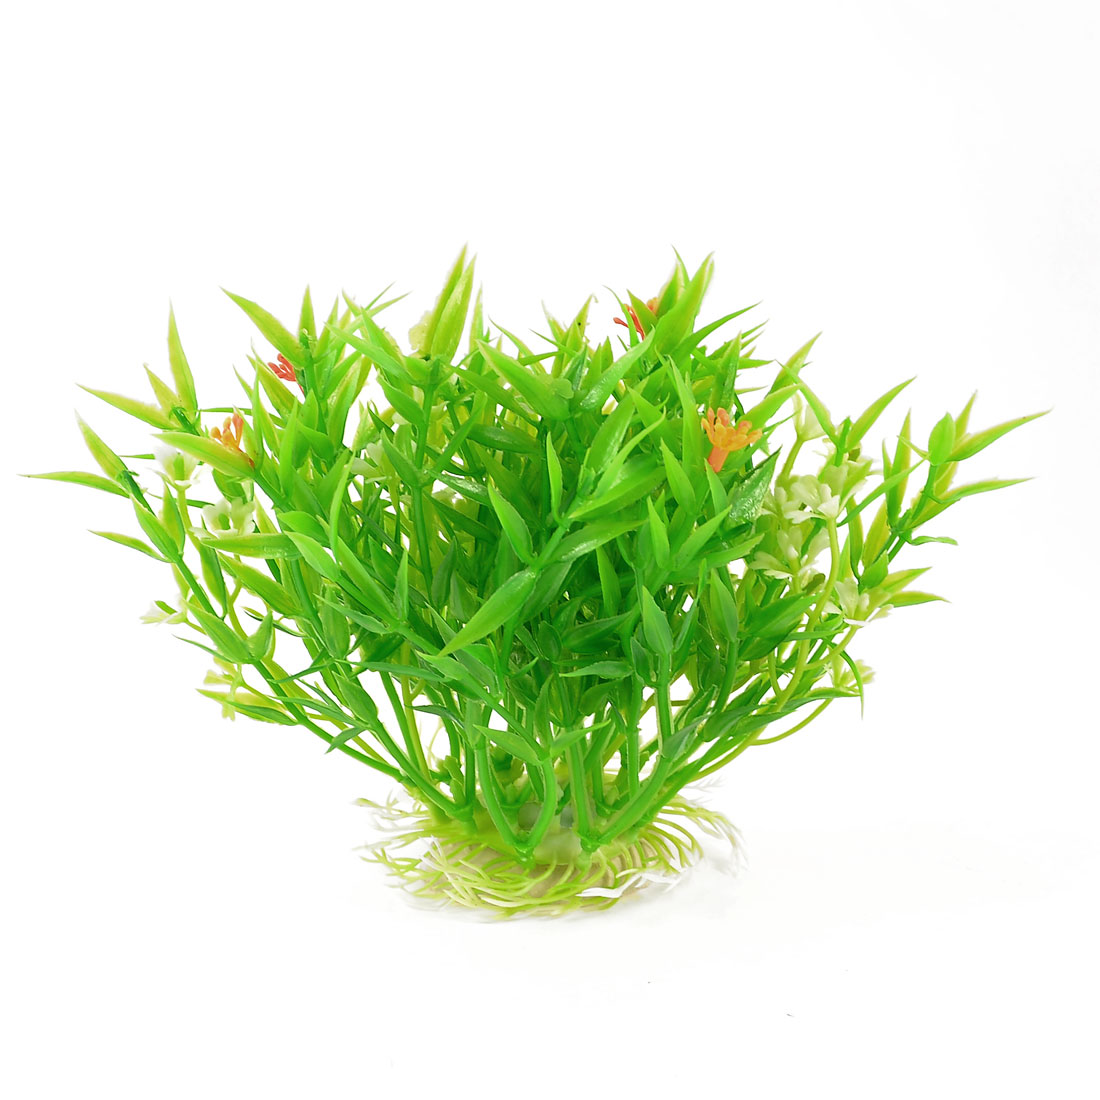 "Unique Bargains 5.5"" Fishbowl Aquascaping Decor Green Orange Artificial Water Grass Plant"